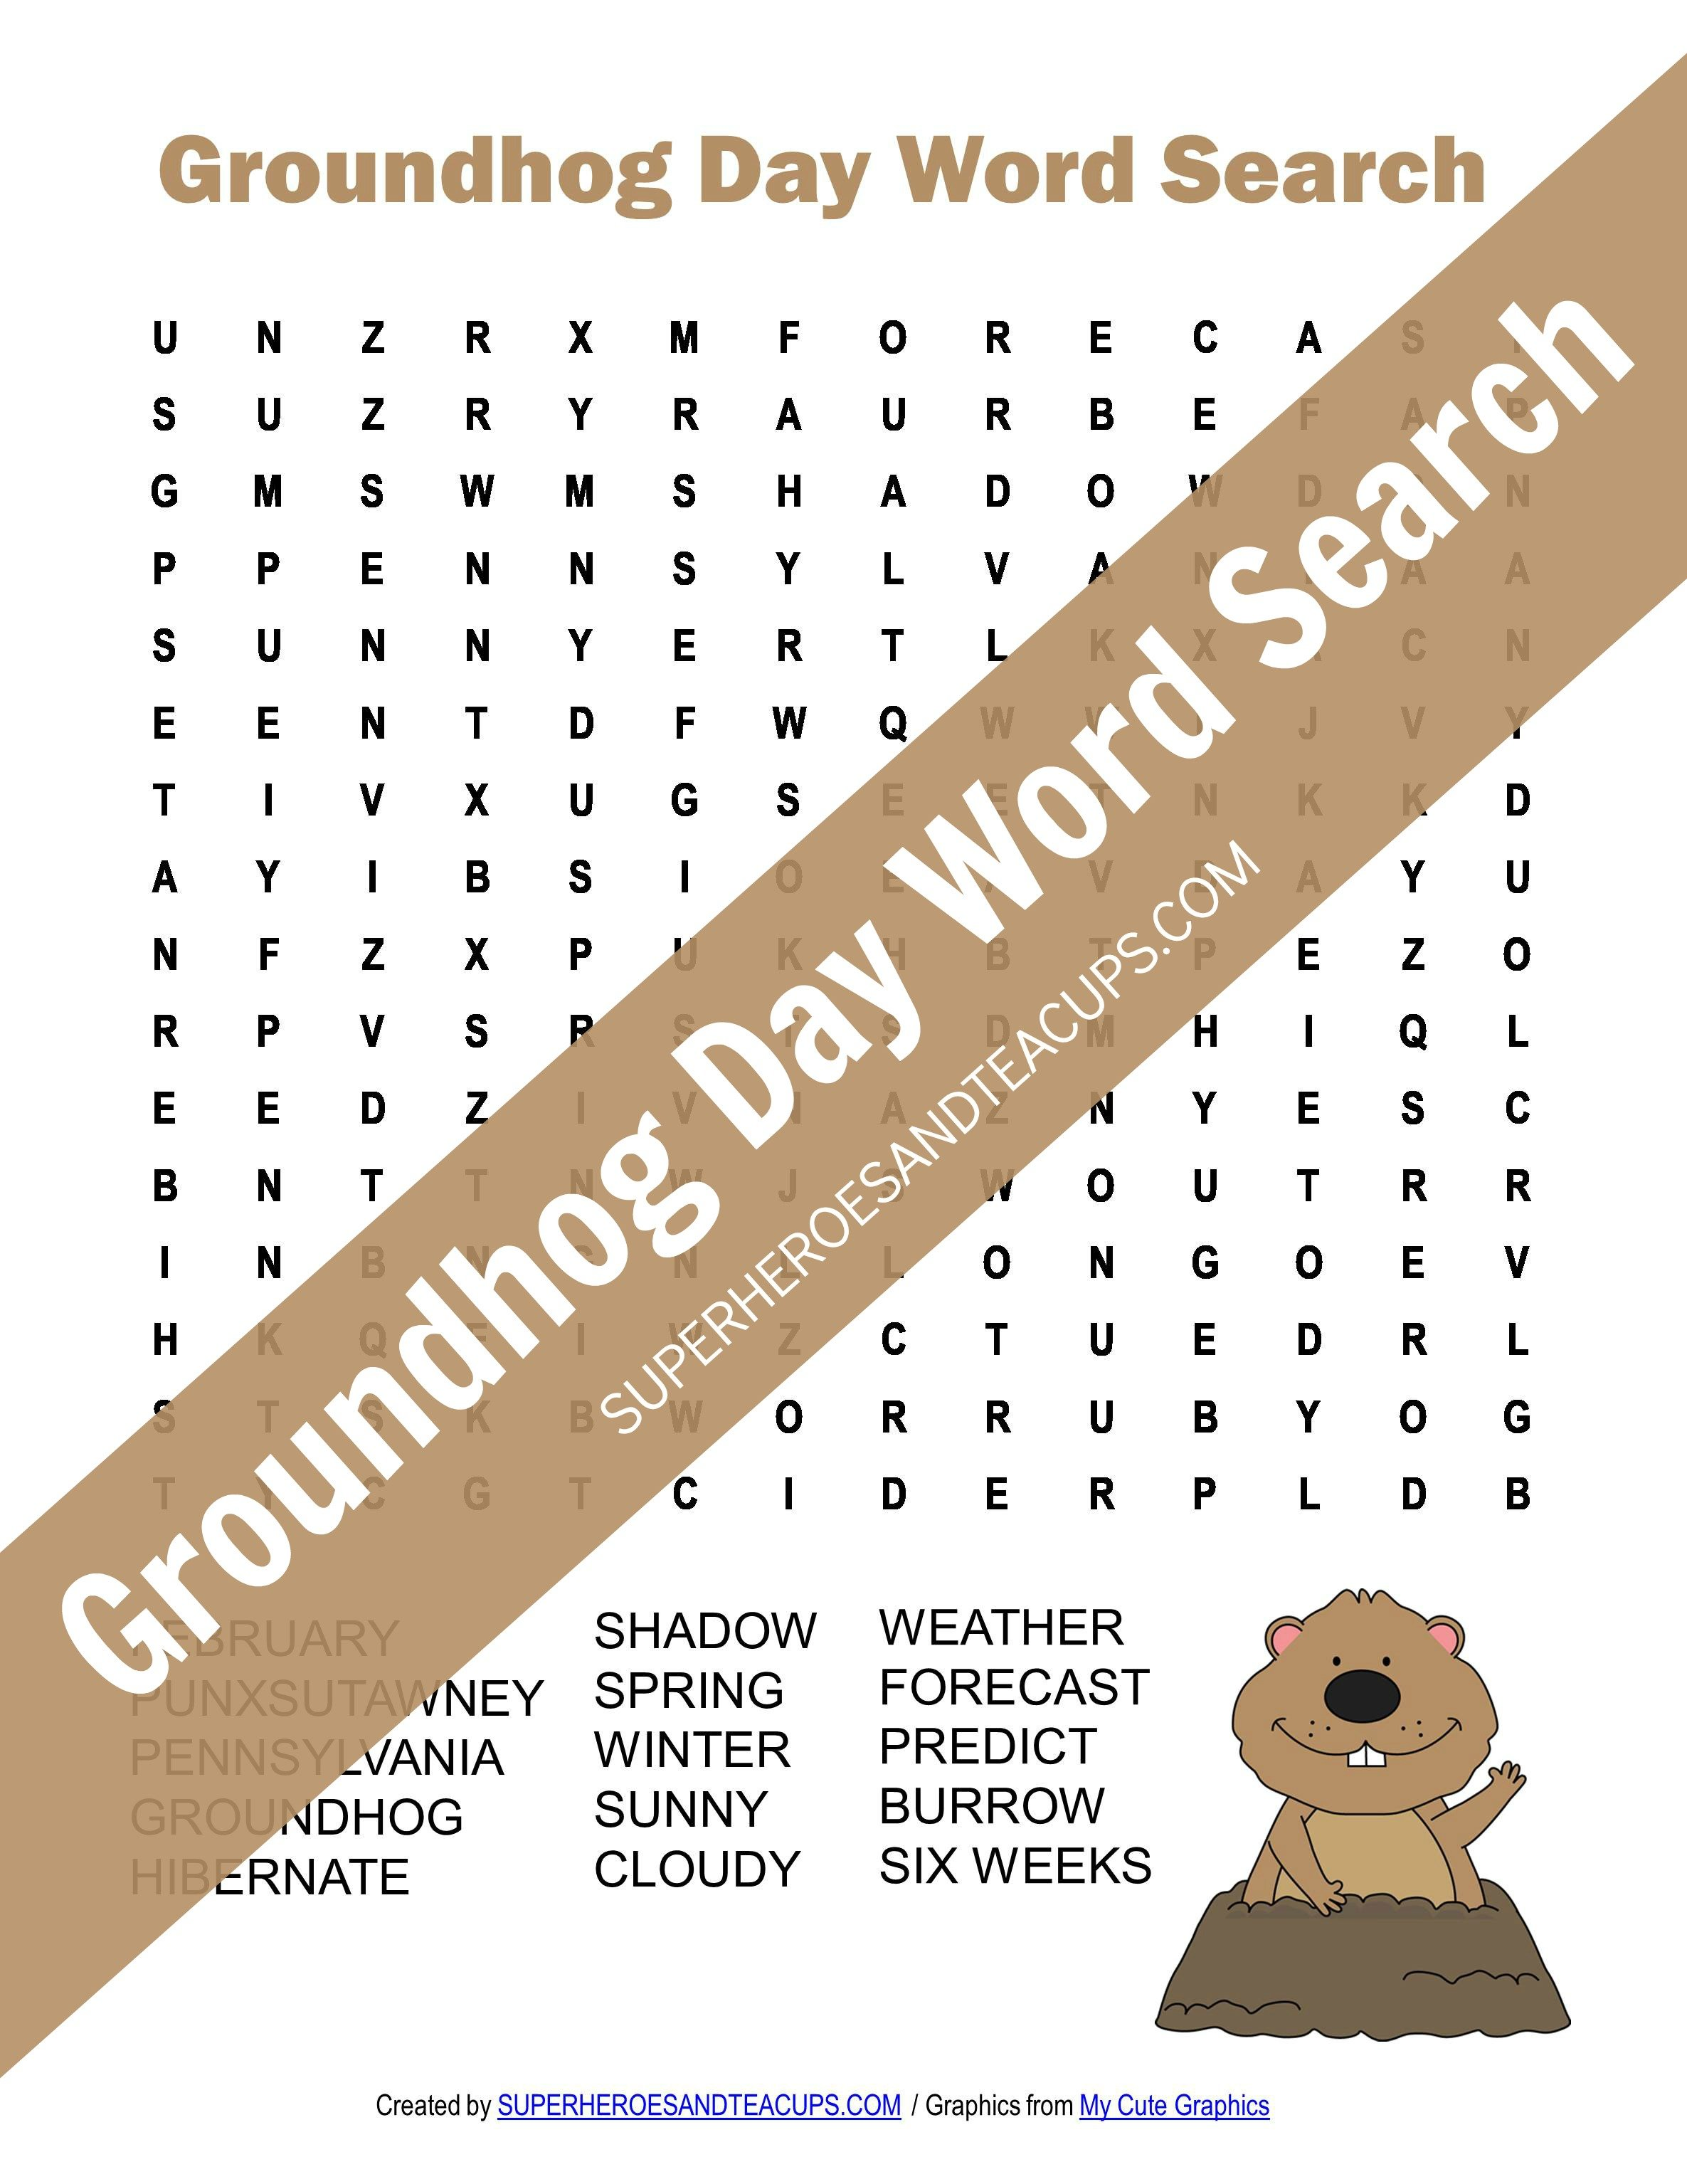 image relating to Groundhog Day Word Search Printable titled Groundhog Working day Phrase Glimpse Free of charge Printable